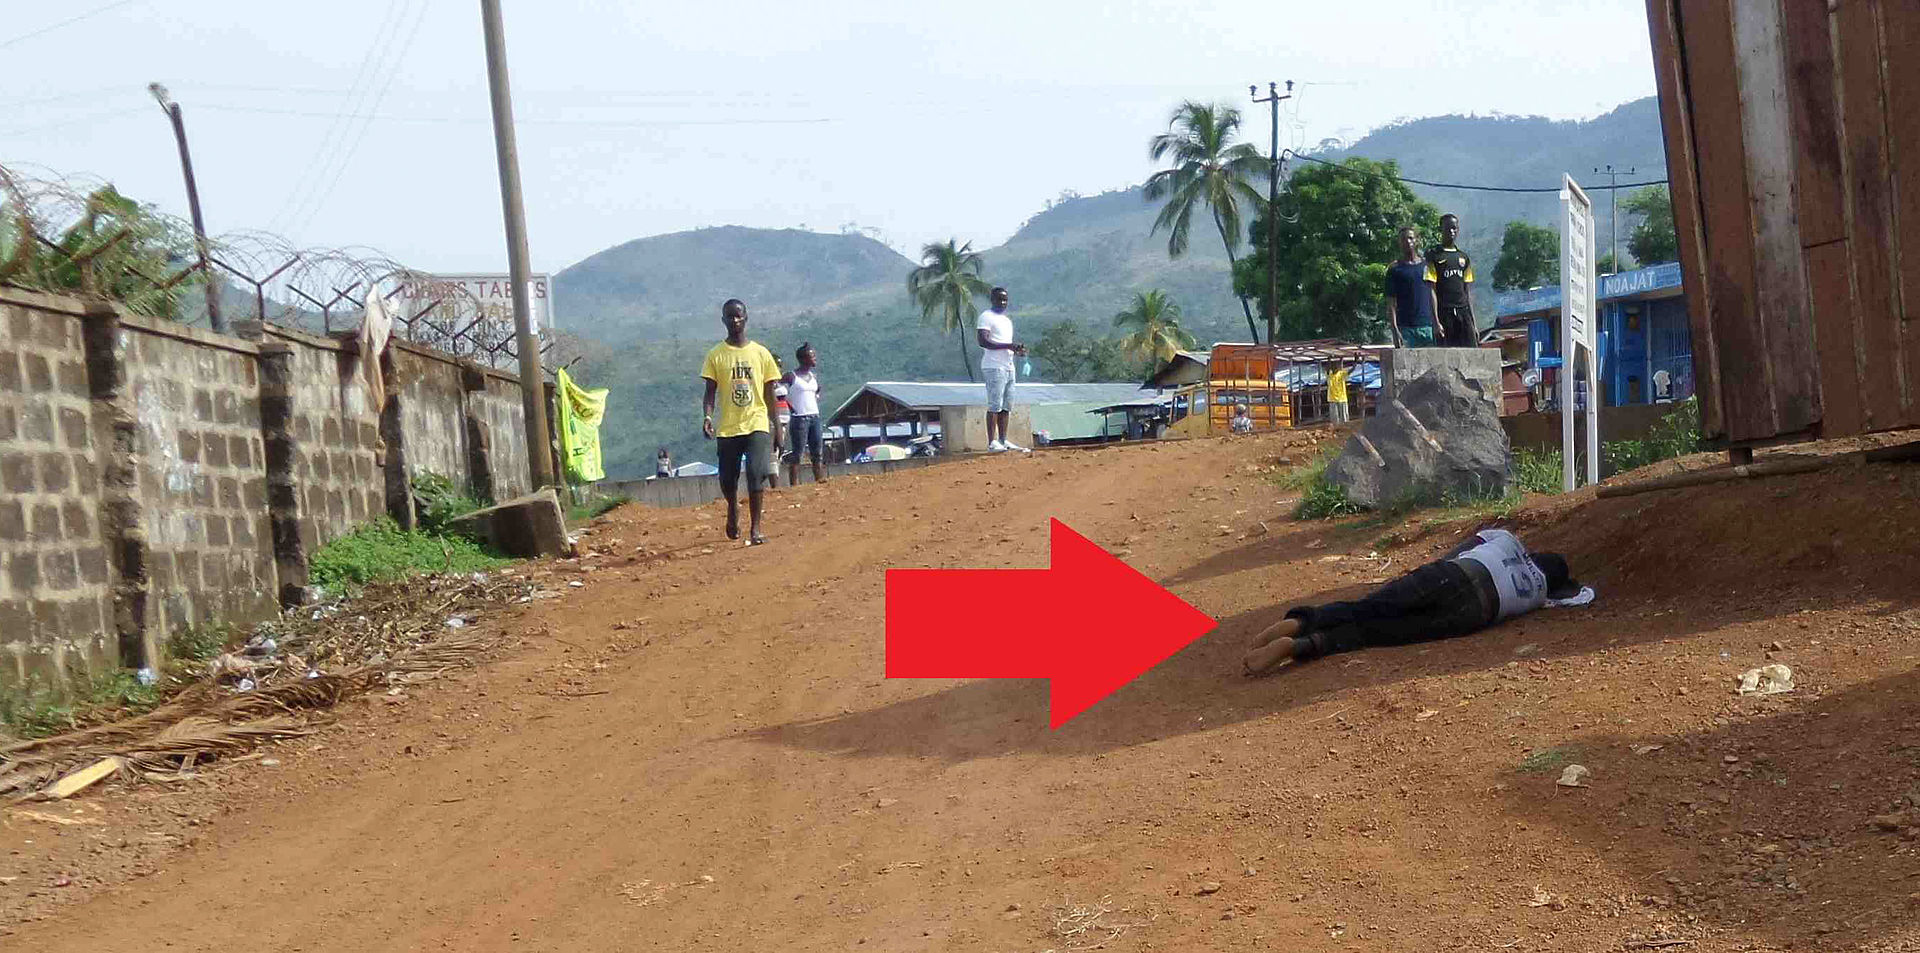 Ebola infected person lying in Lakka Sierra Leone.jpg